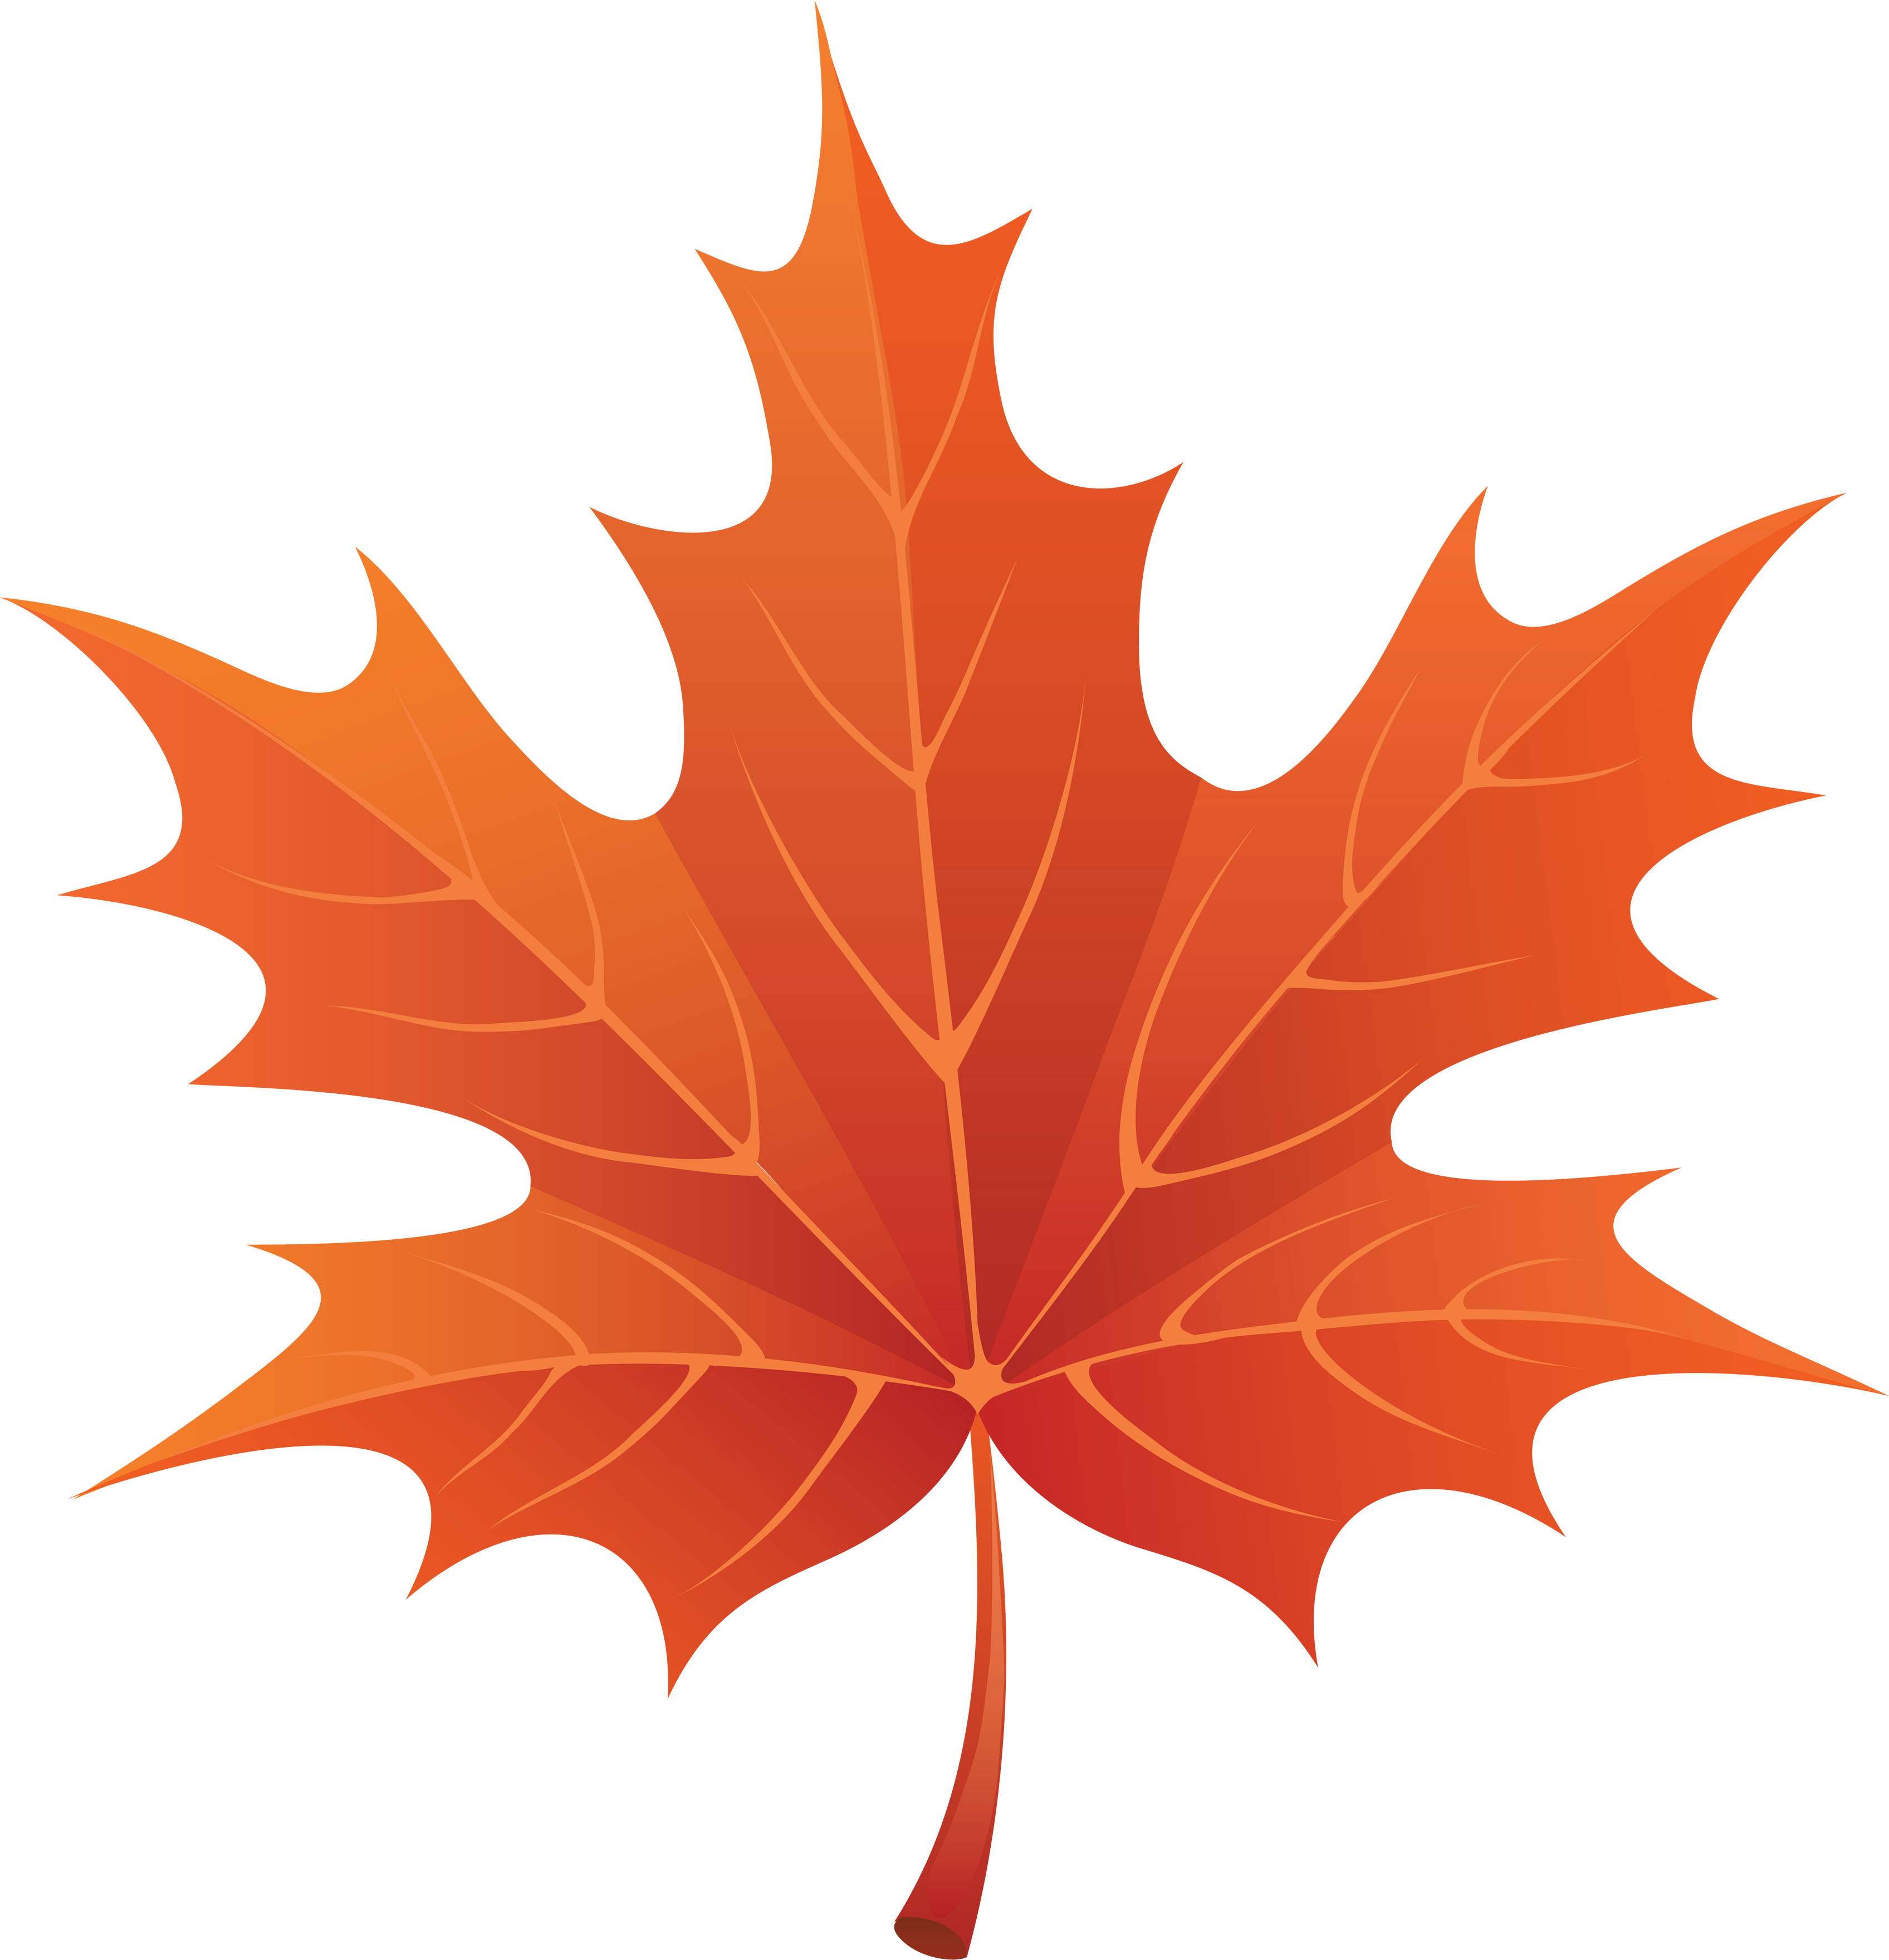 Download Png Image Maple Png Leaf-Download Png Image Maple Png Leaf-3